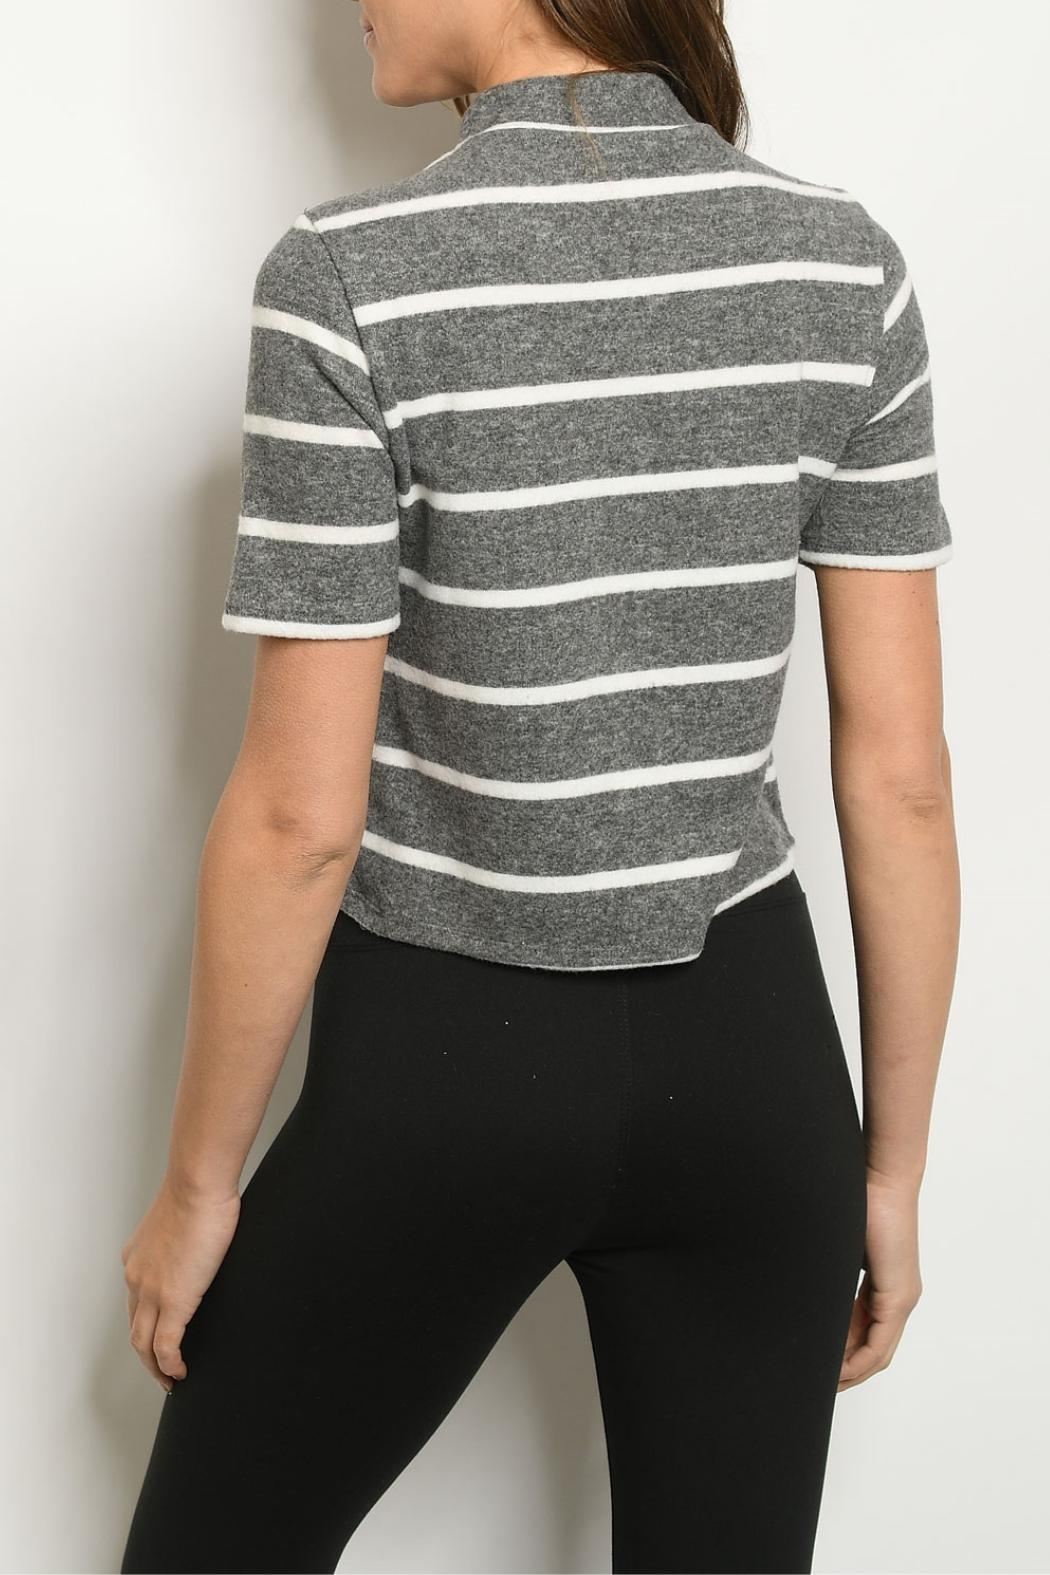 FORE Charcoal Ivory-Striped Top - Front Full Image